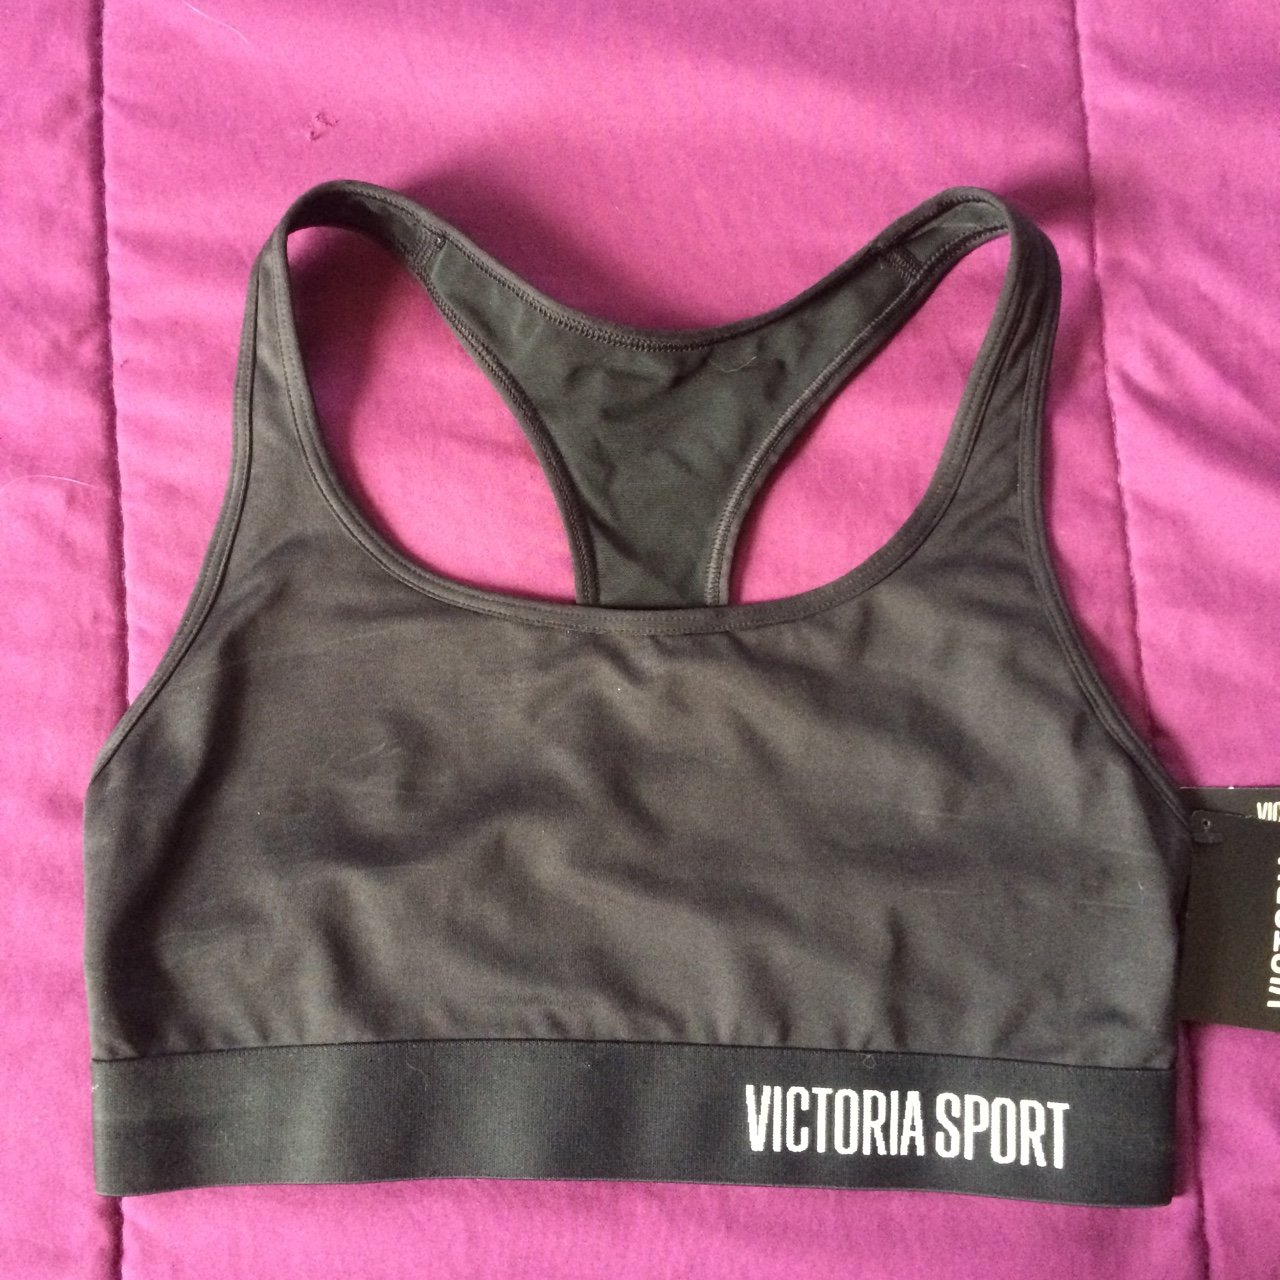 062e1f1e42e29 Victoria s Secret sports bra. Size small. Brand new